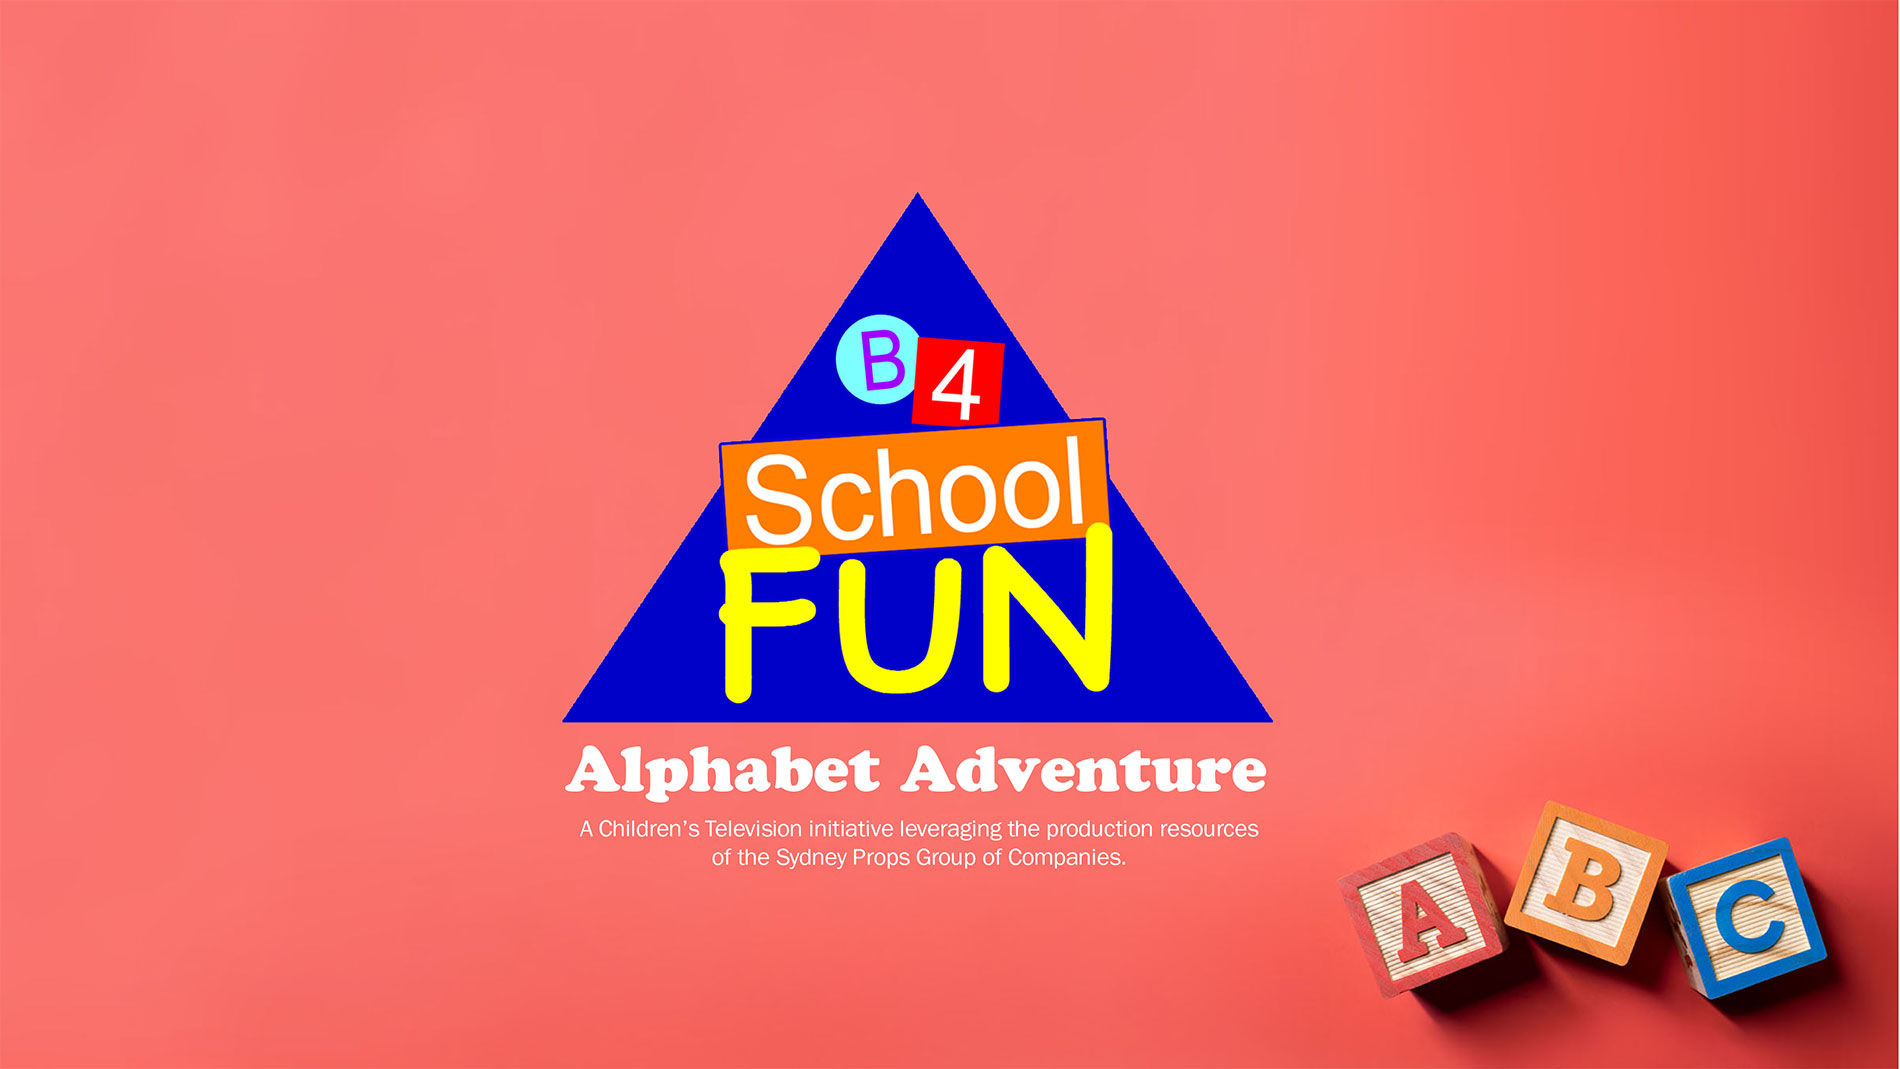 B4School FUN - Alphabet Adventure